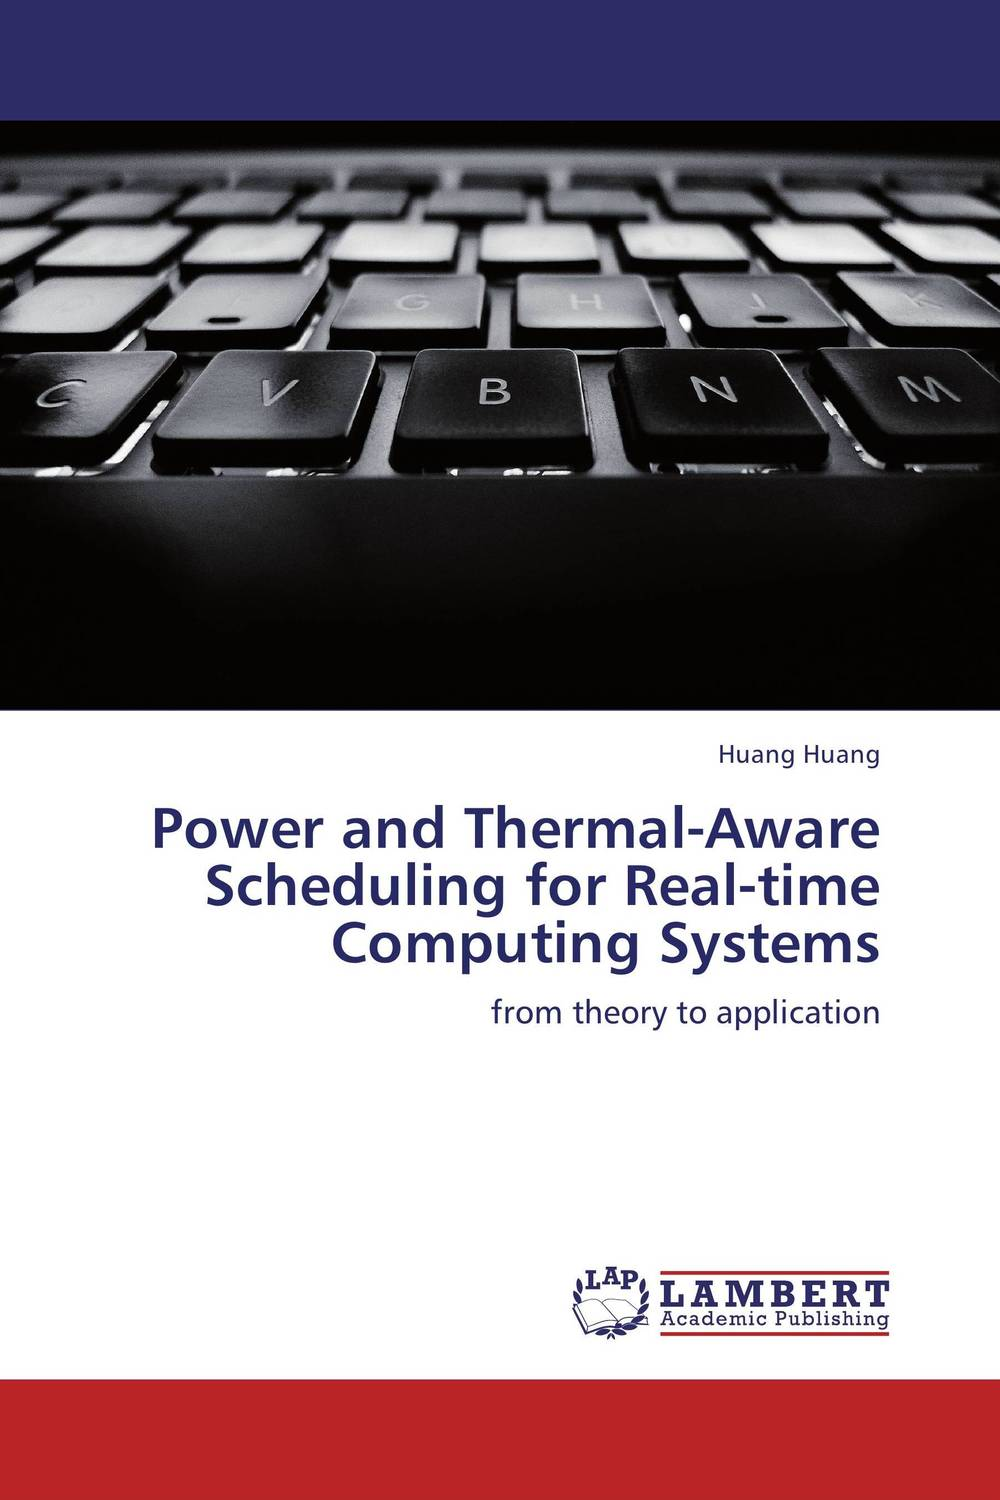 Power and Thermal-Aware Scheduling for Real-time Computing Systems ayman eltaliawy hassan mostafa and yehea ismail circuit design techniques for microscale energy harvesting systems